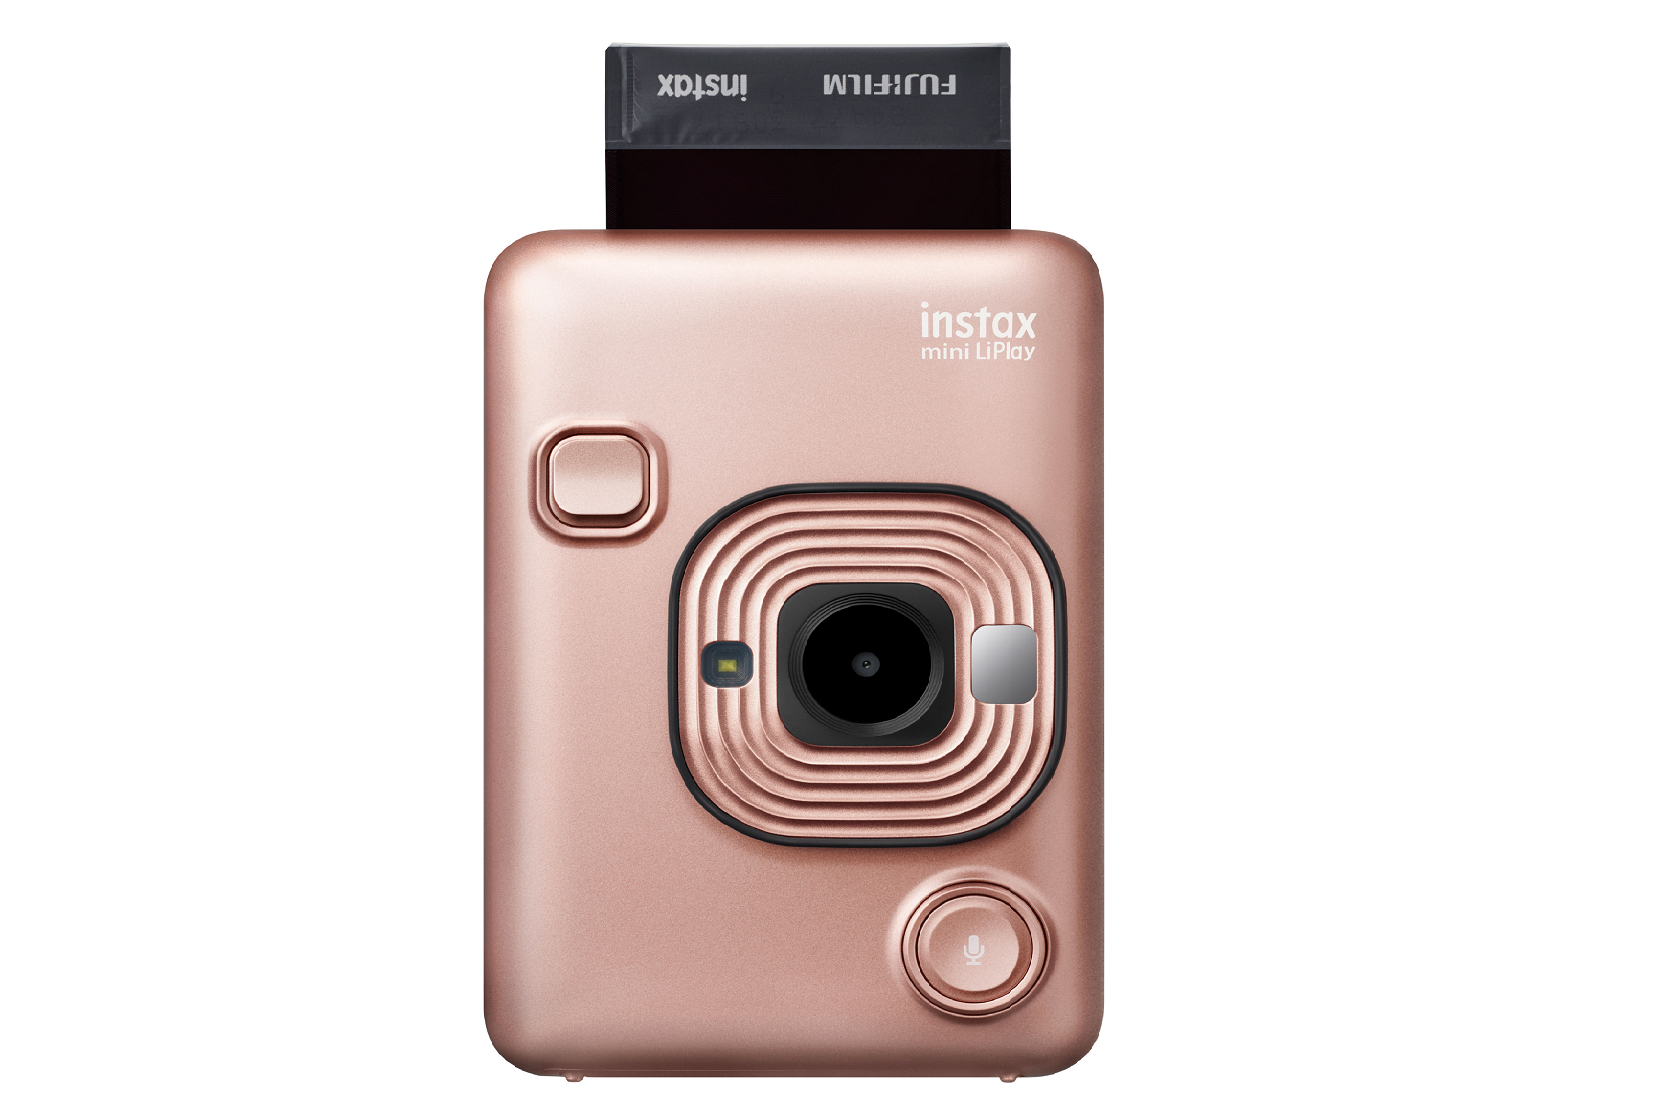 [画像]instax mini LiPlay